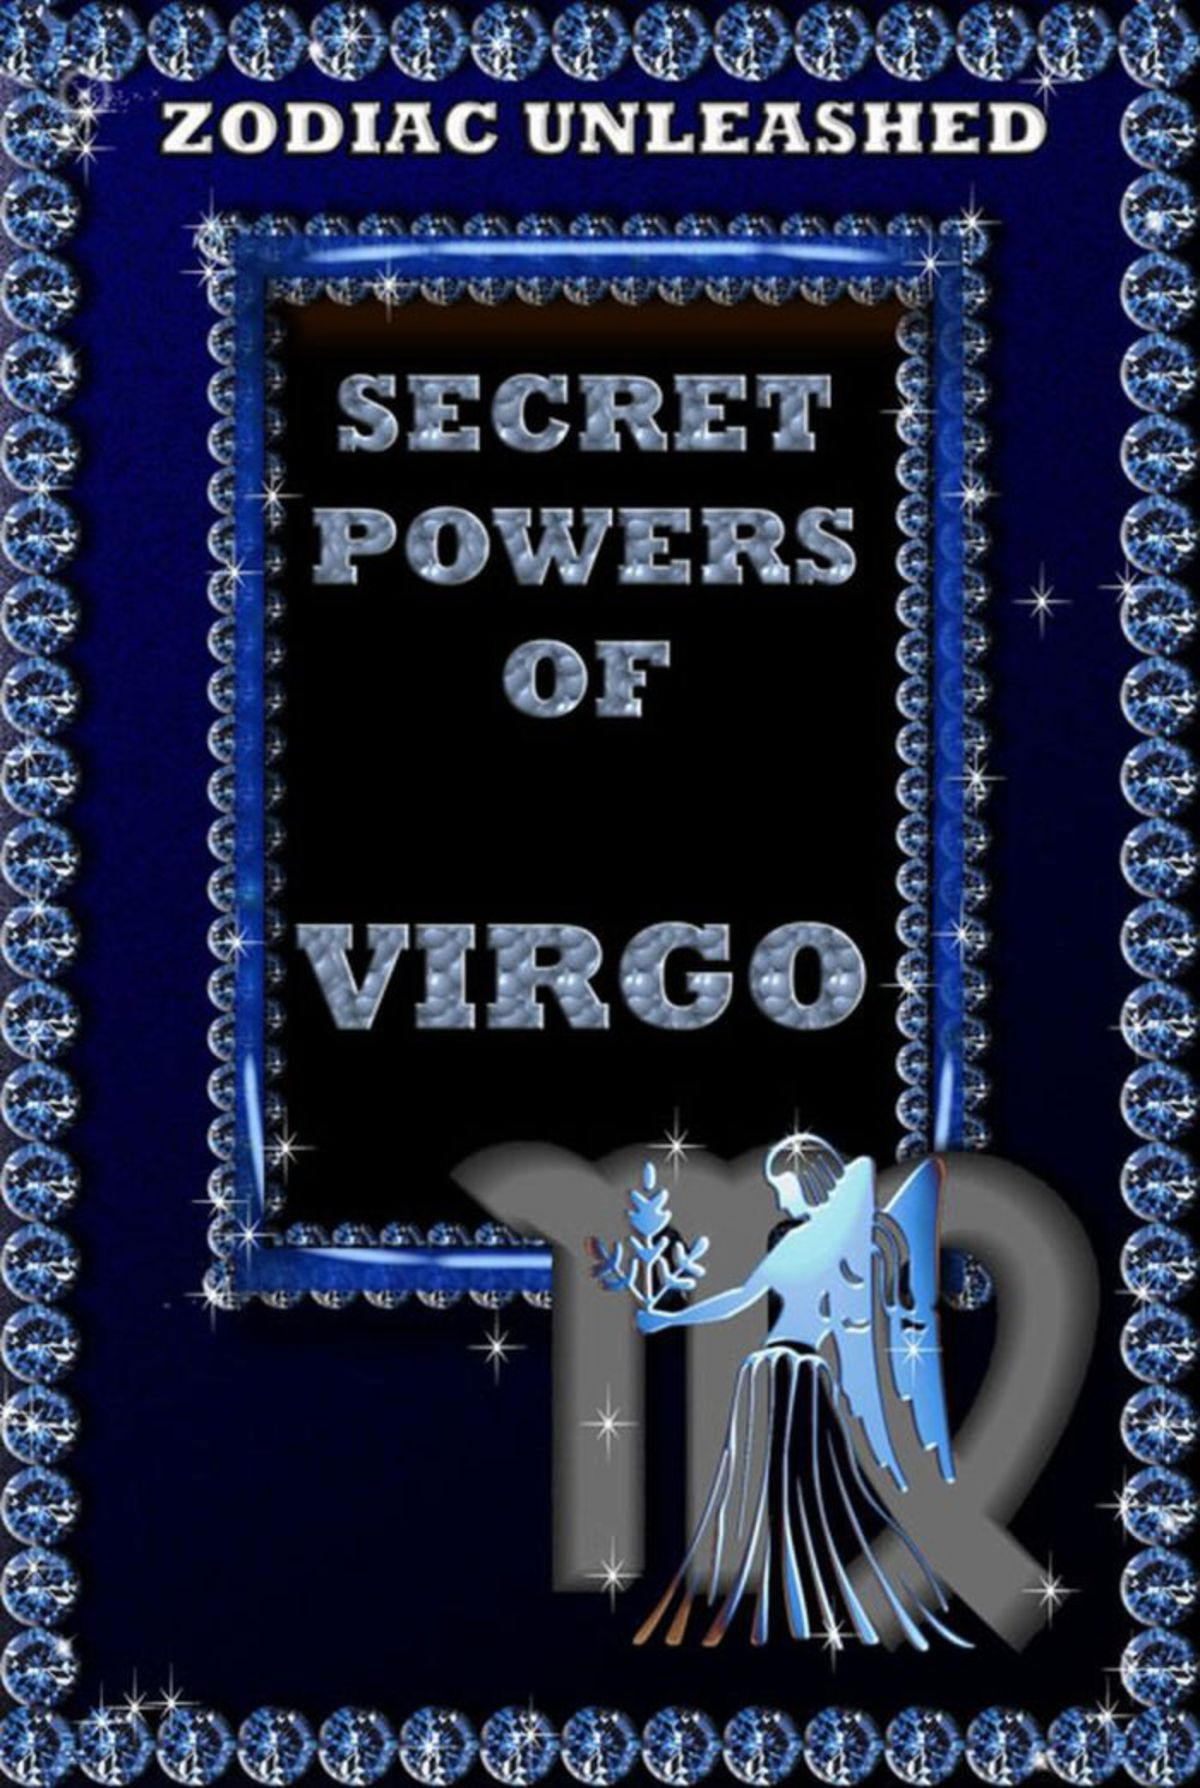 Zodiac Unleashed - Virgo